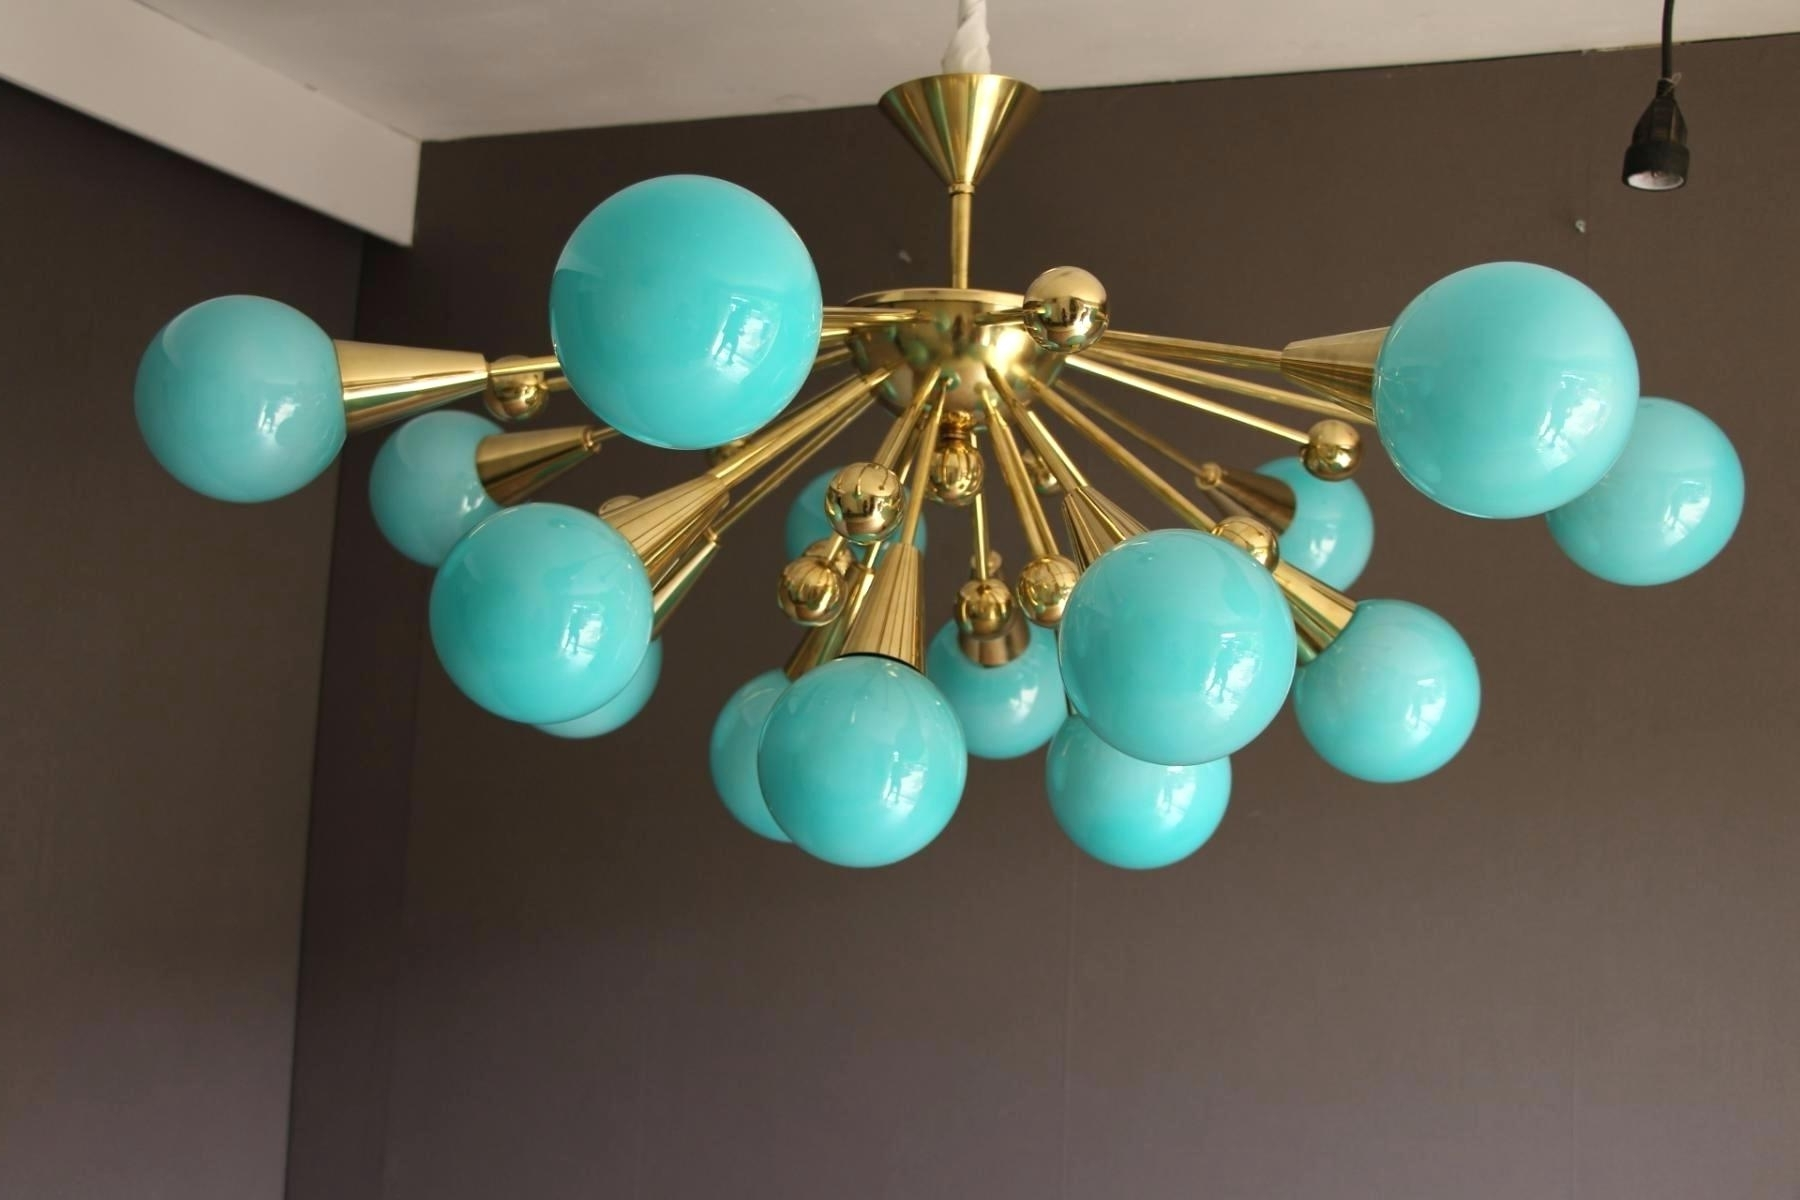 Preferred Turquoise Blown Glass Chandeliers Inside Hand Blown Glass Lamp Shades Six Arms Turquoise With Gold Flecks (View 8 of 15)